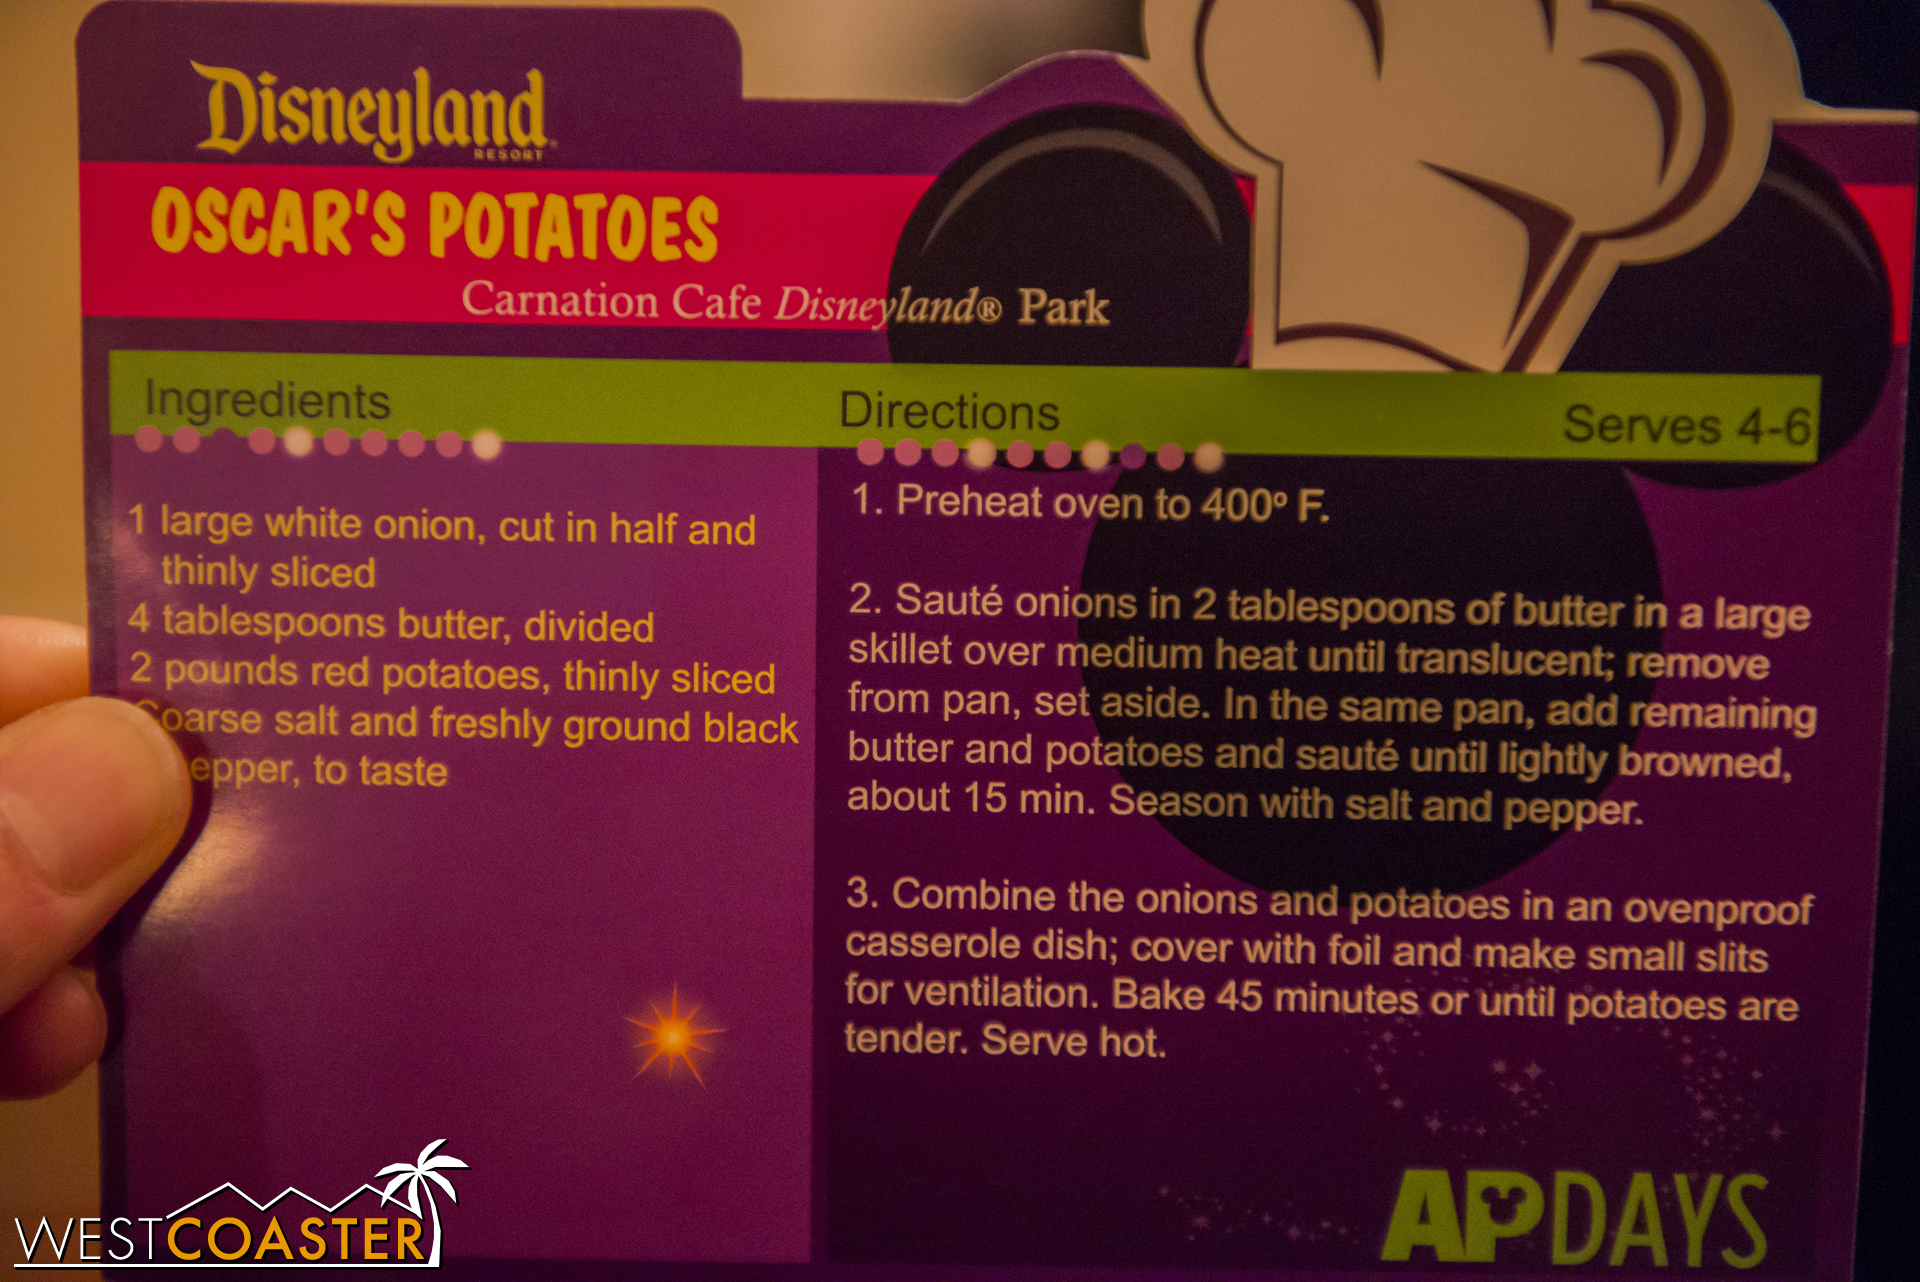 Here's this week's recipe card, which can be obtained from Redd Rocket's Pizza Port, Jolly Holiday Bakery, Refreshment Corner, or Gibson Girl Ice Cream Parlor (just go to a cashier and show him or her your AP for scanning).